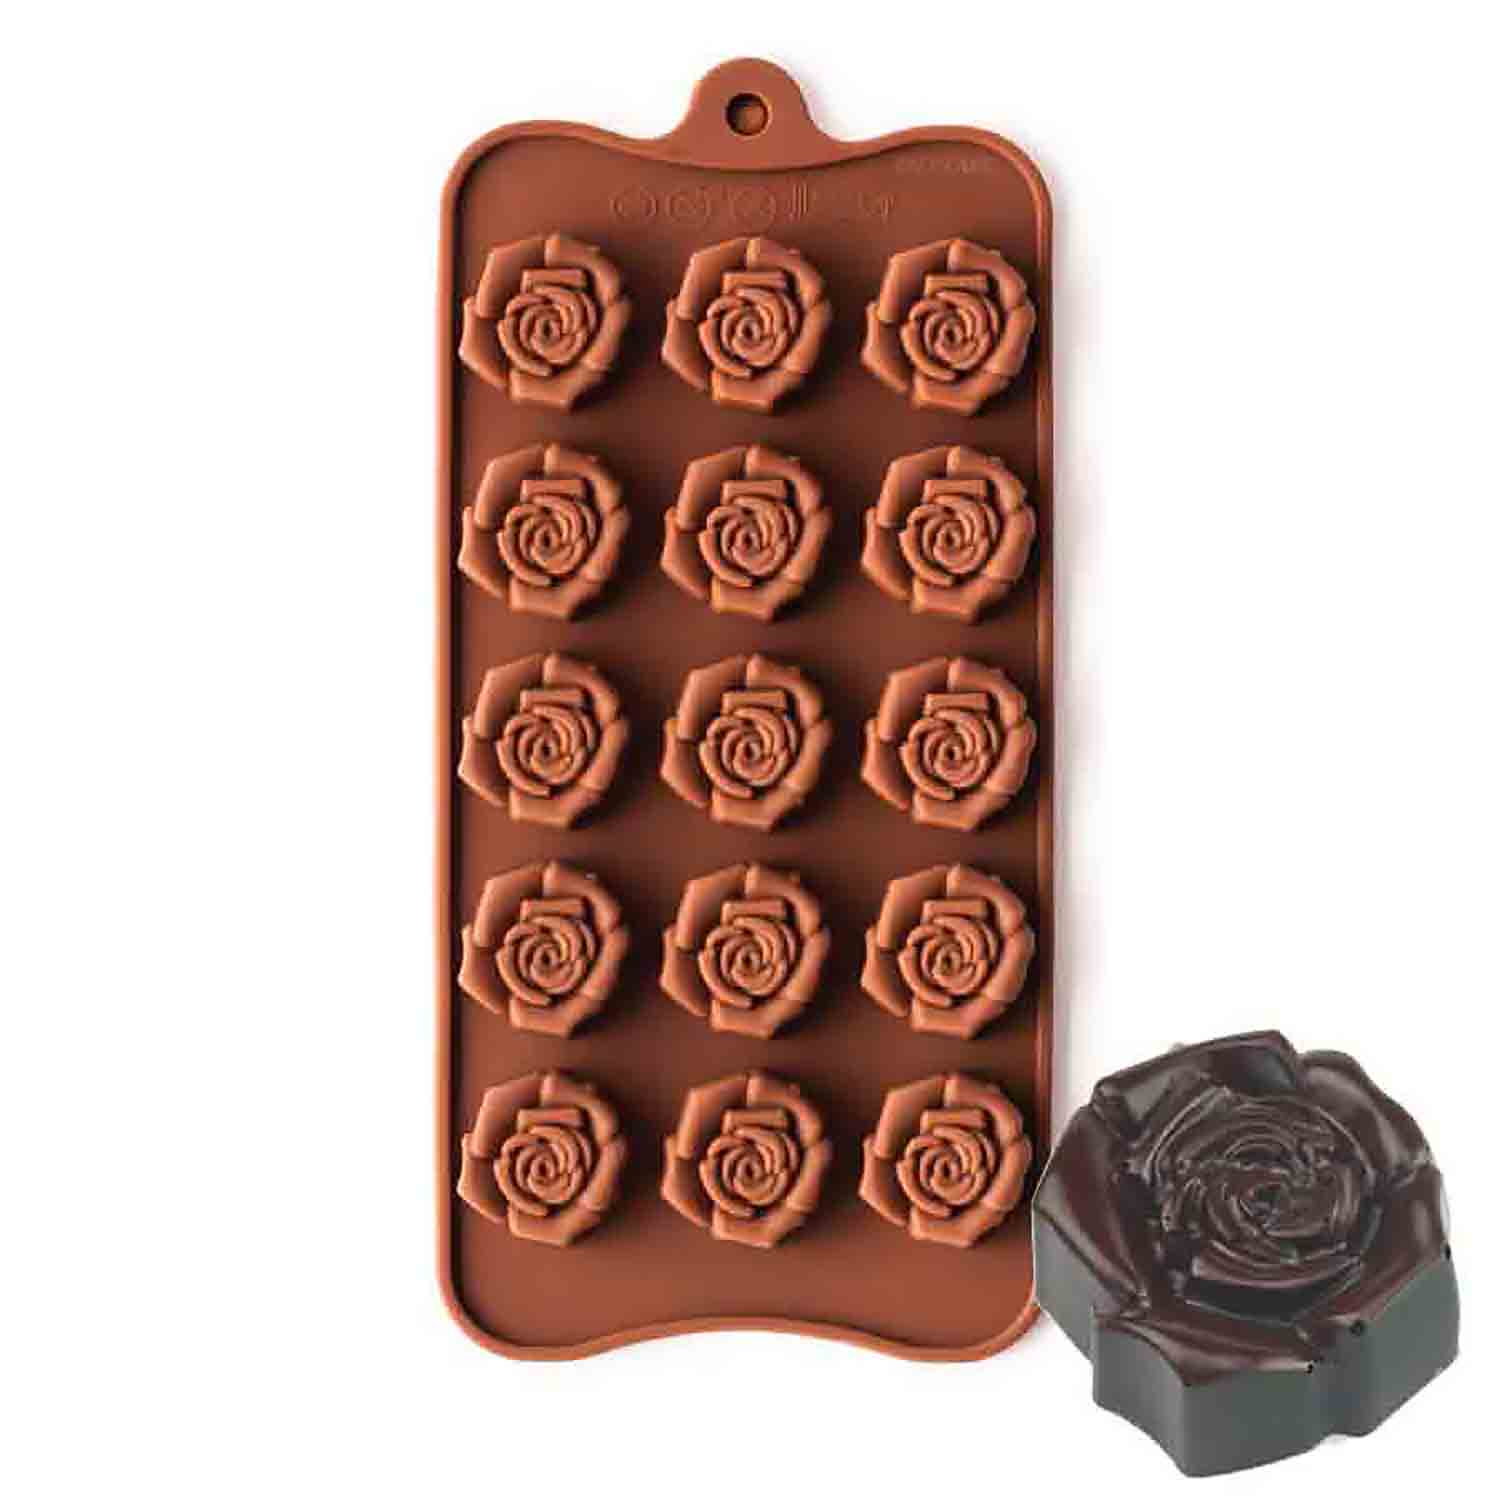 Open Rose Silicone Chocolate Candy Mold